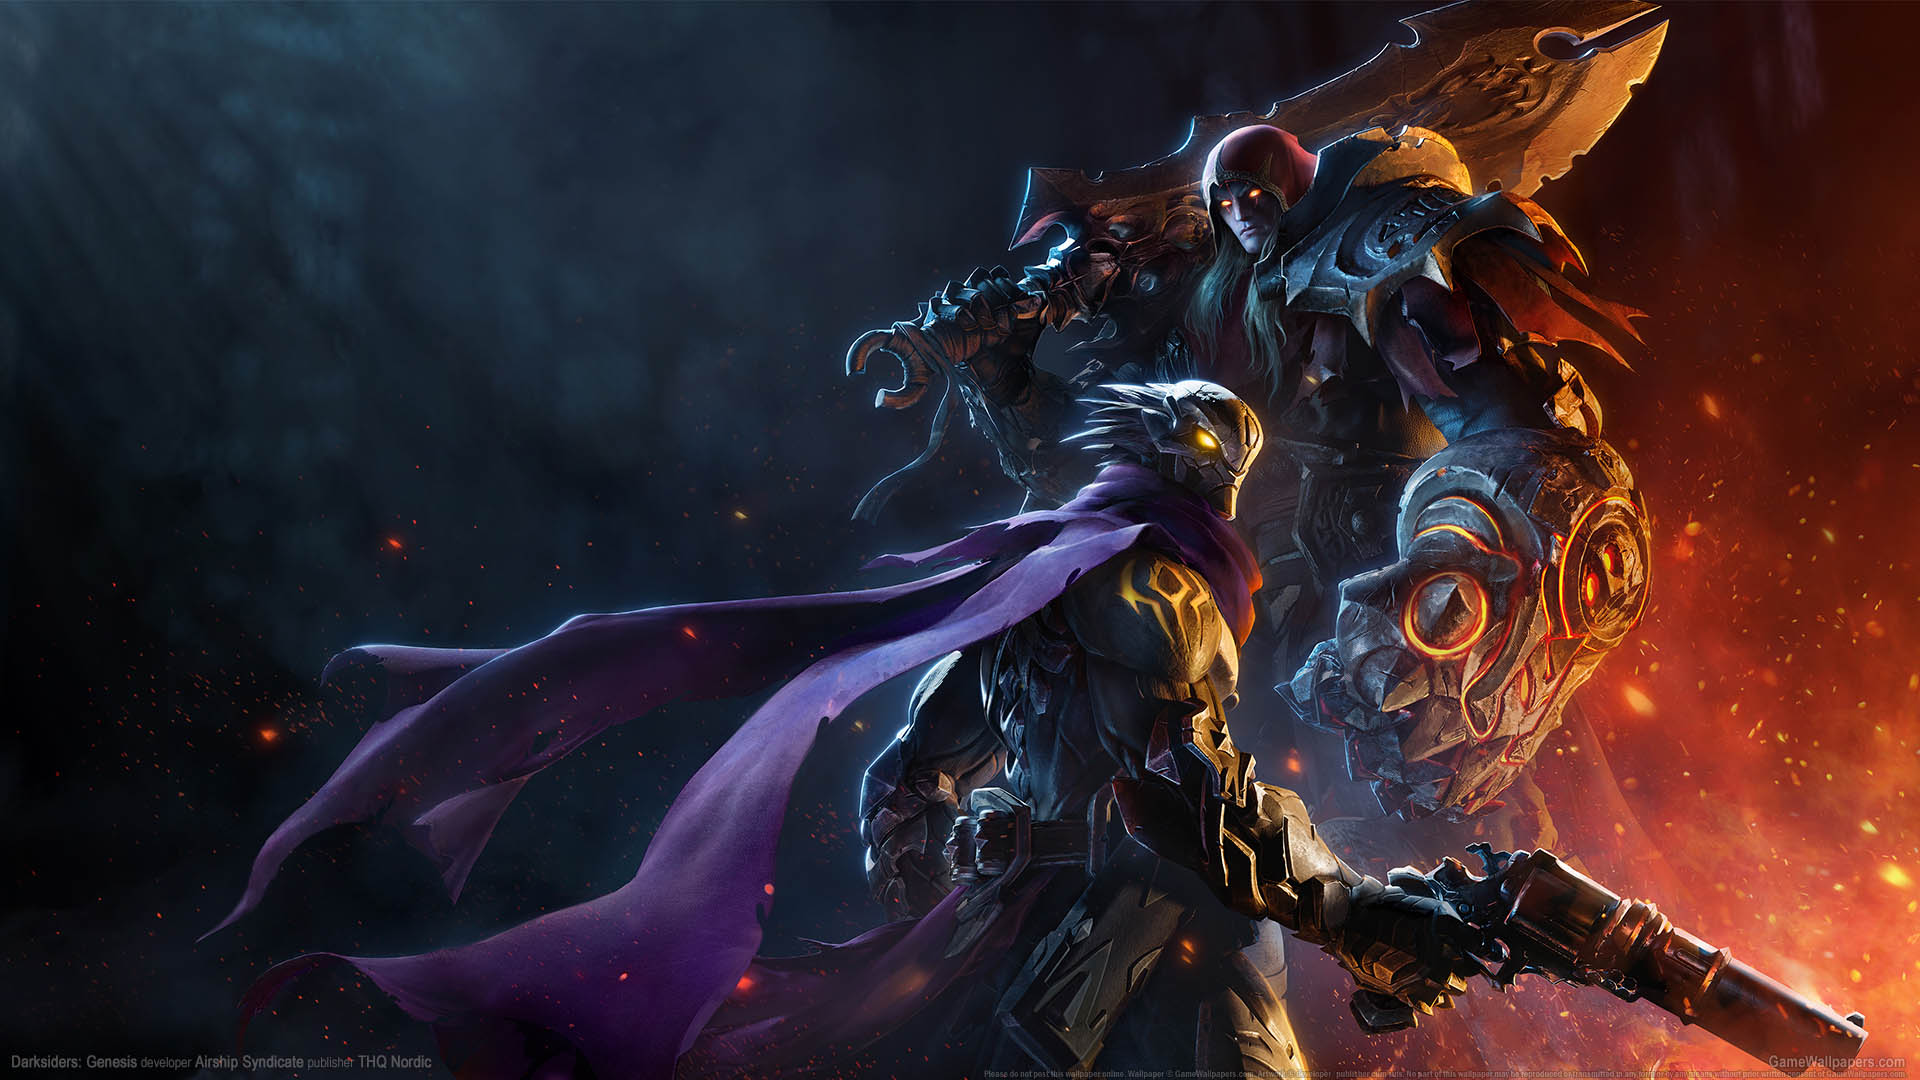 Darksiders: Genesis wallpaper 01 1920x1080